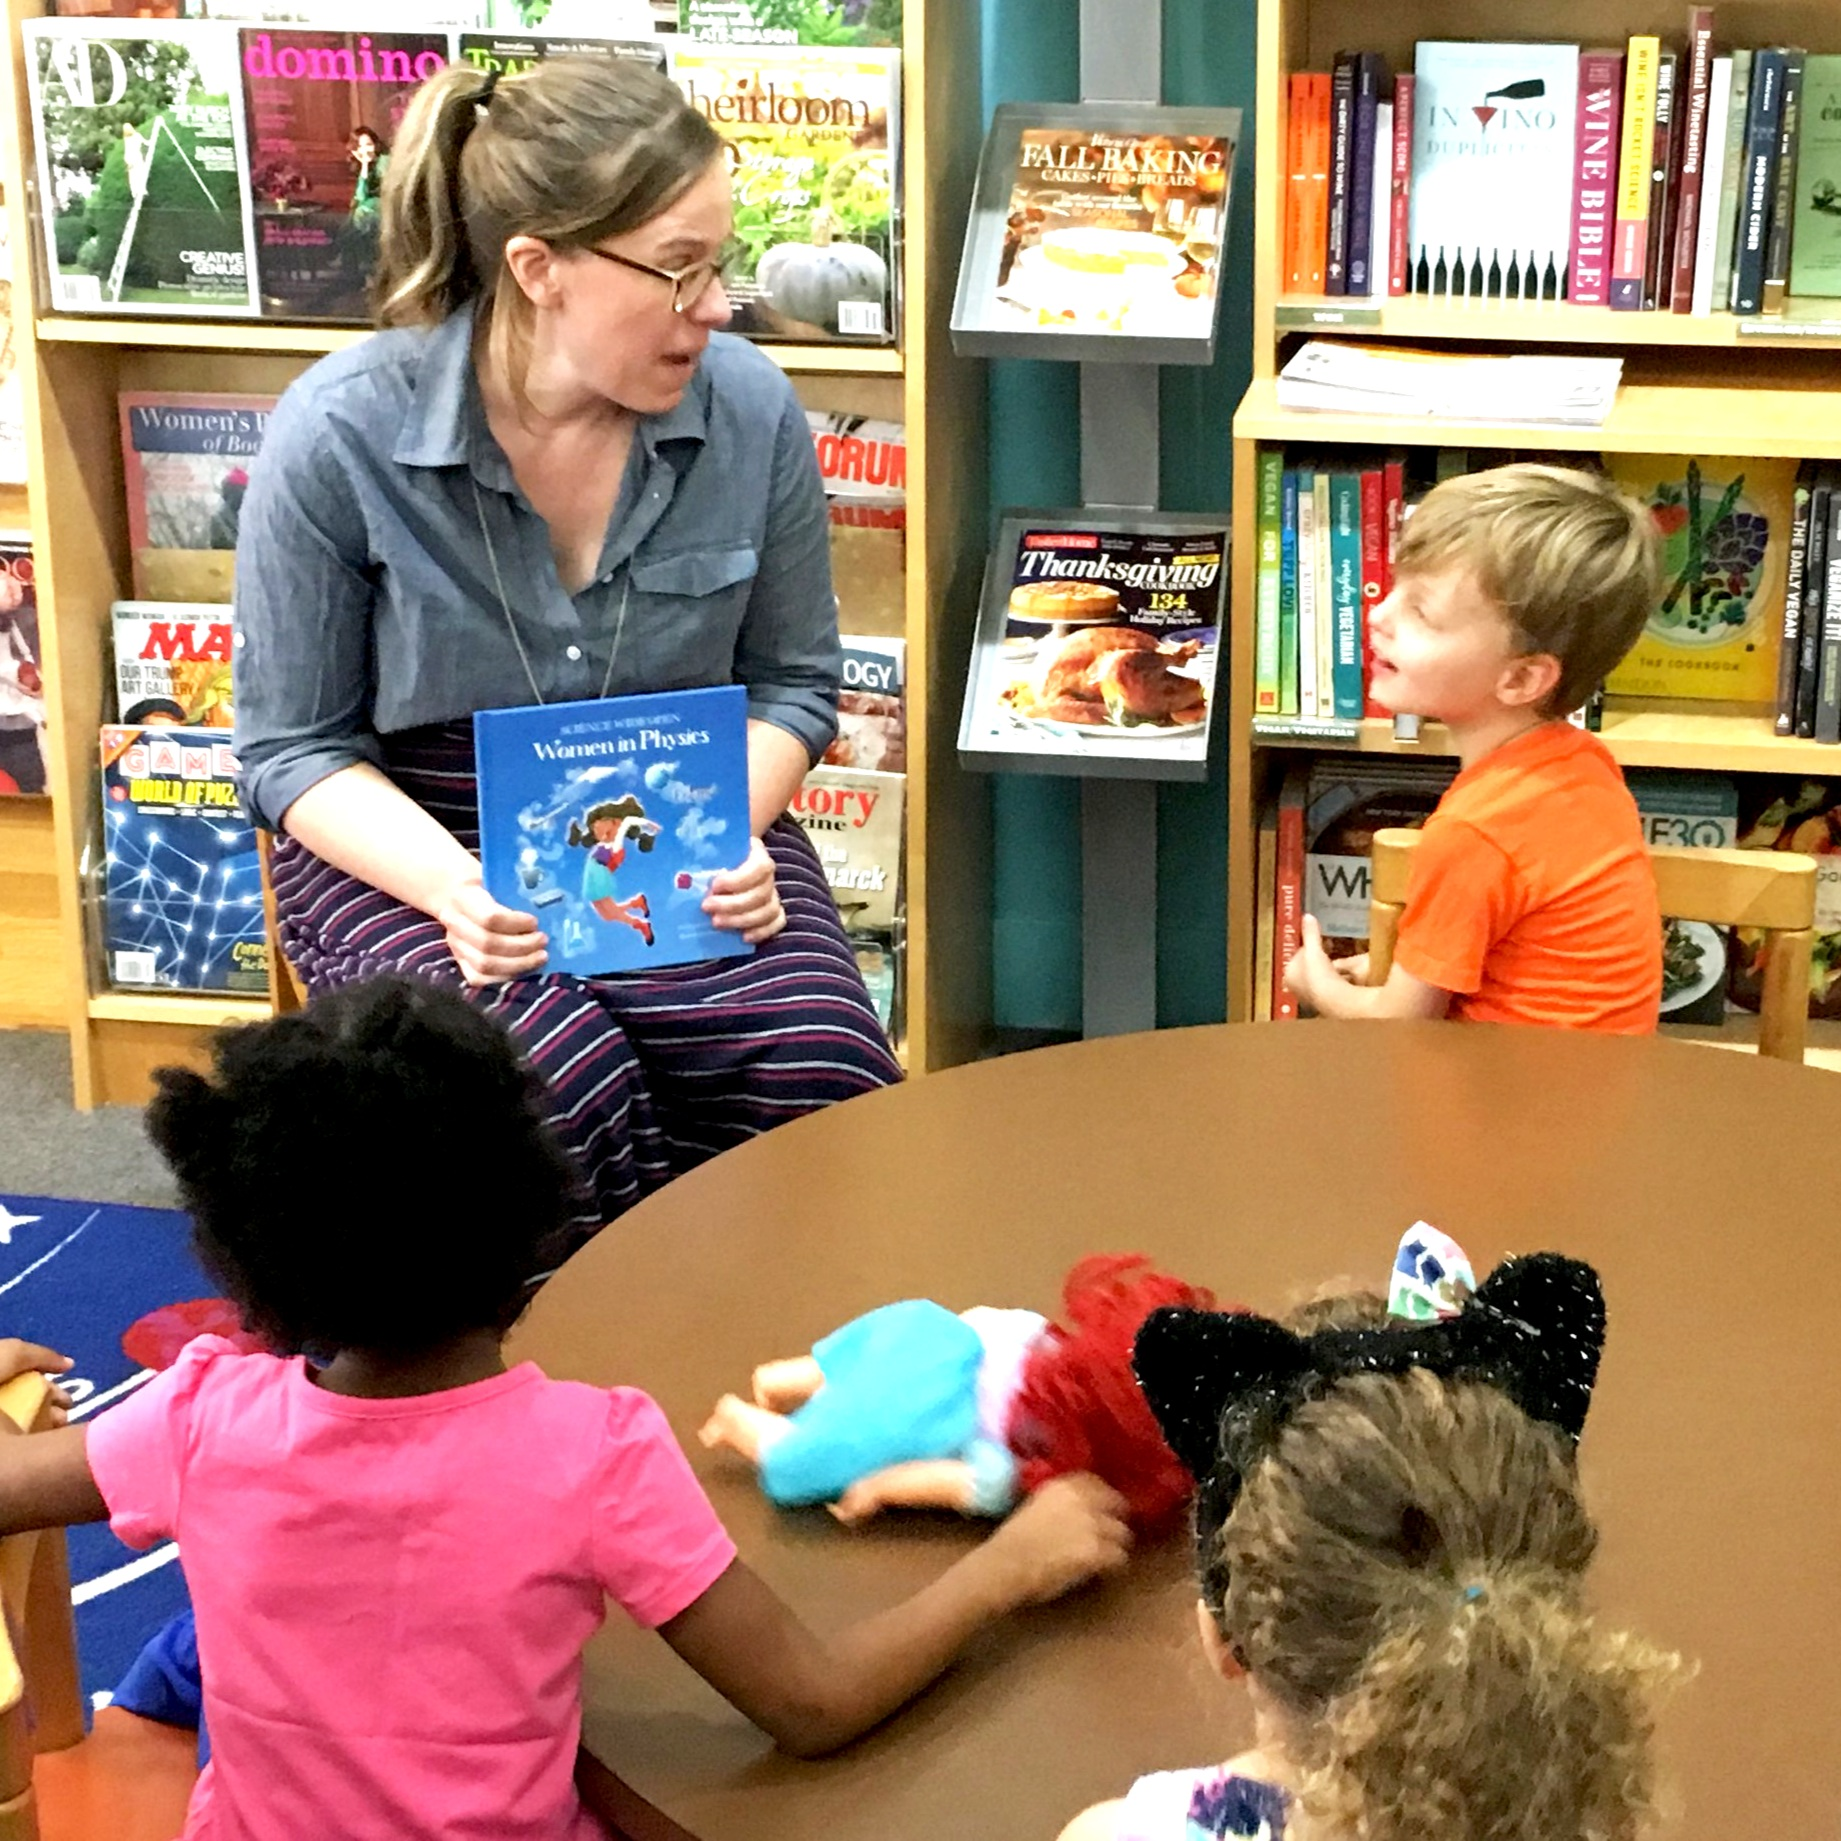 Mary and kiddos at storytime.